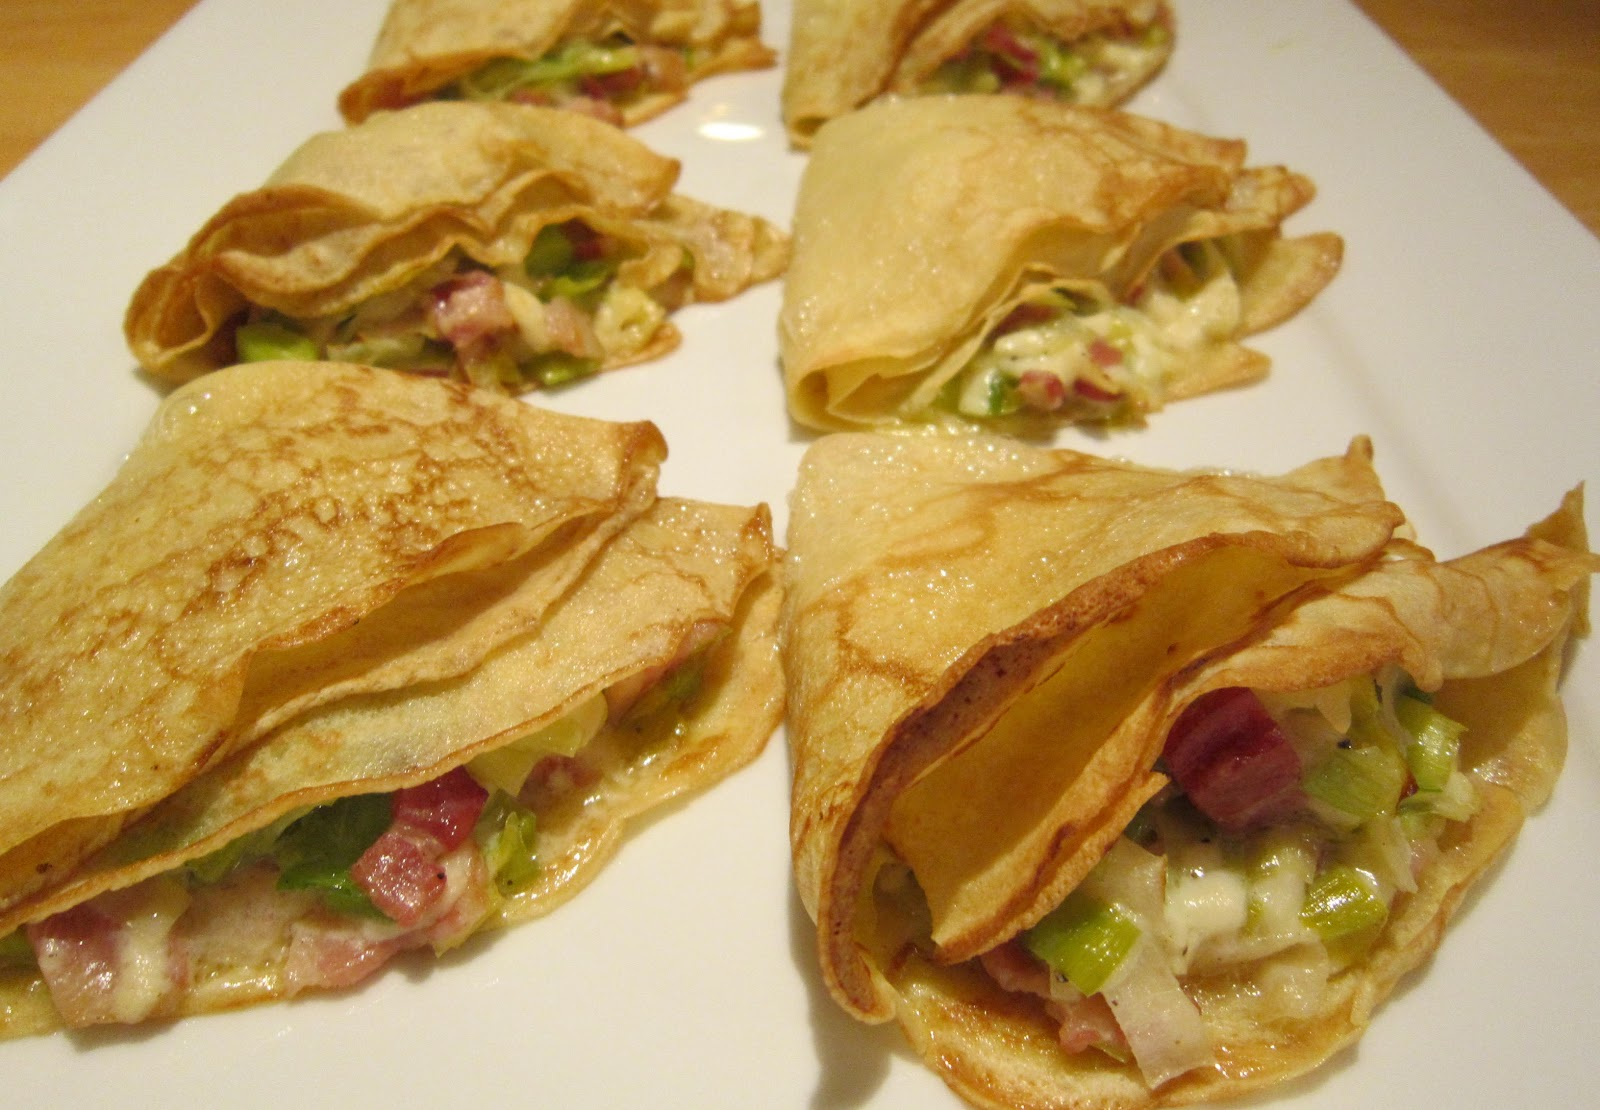 Galettes Poireau-Fromage (Buckwheat Crepes with Leeks and Cheese)